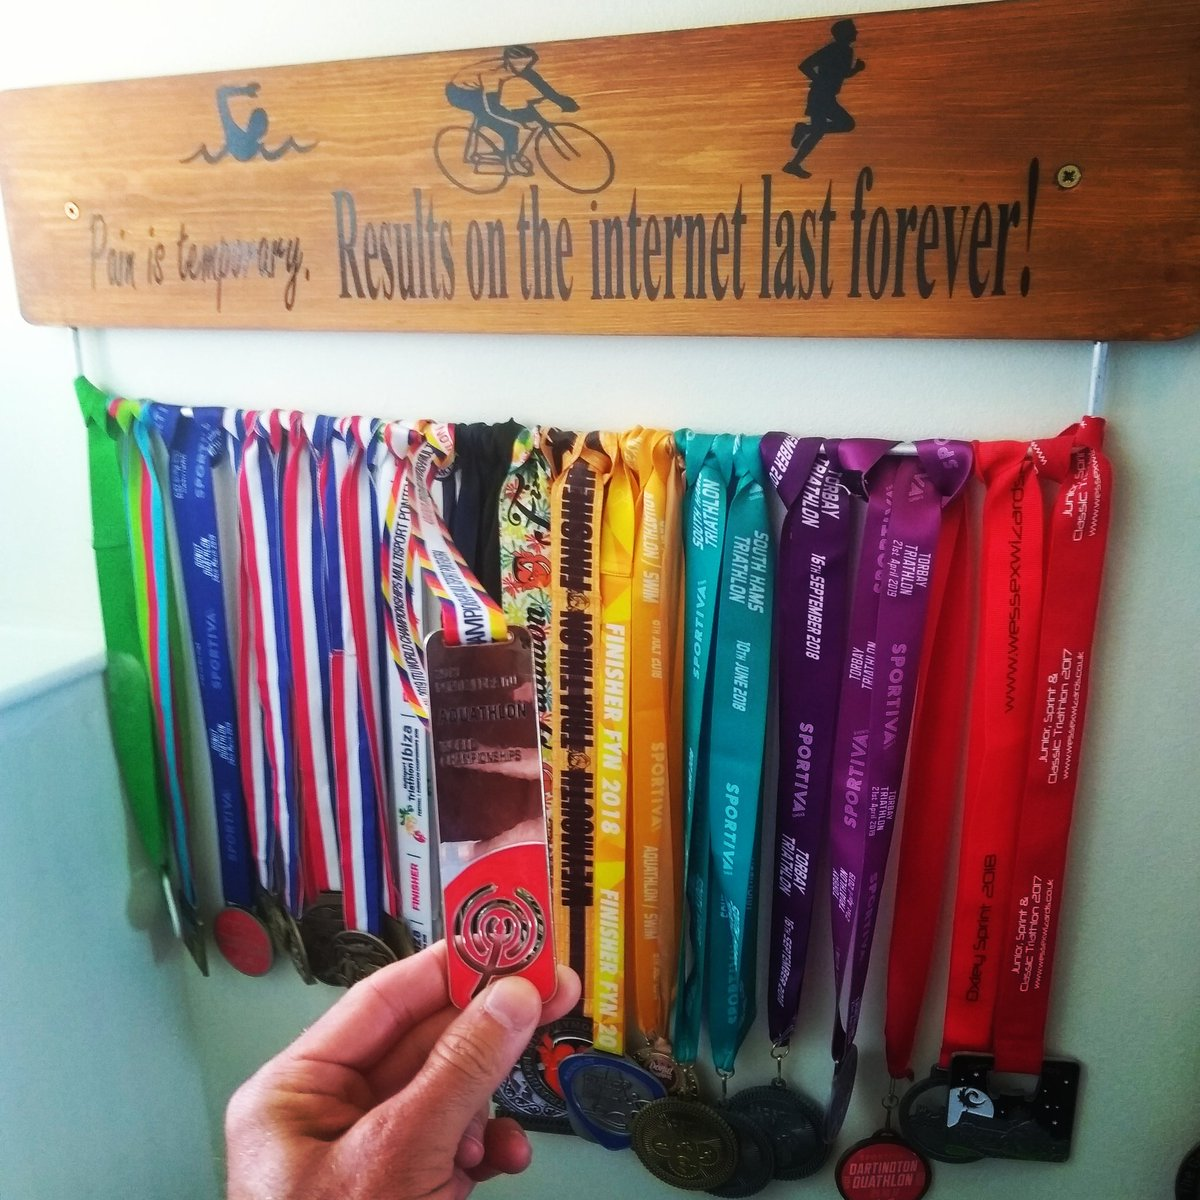 @thatagegroupguy Please check out gbmedalboards.com for personalised medal boards